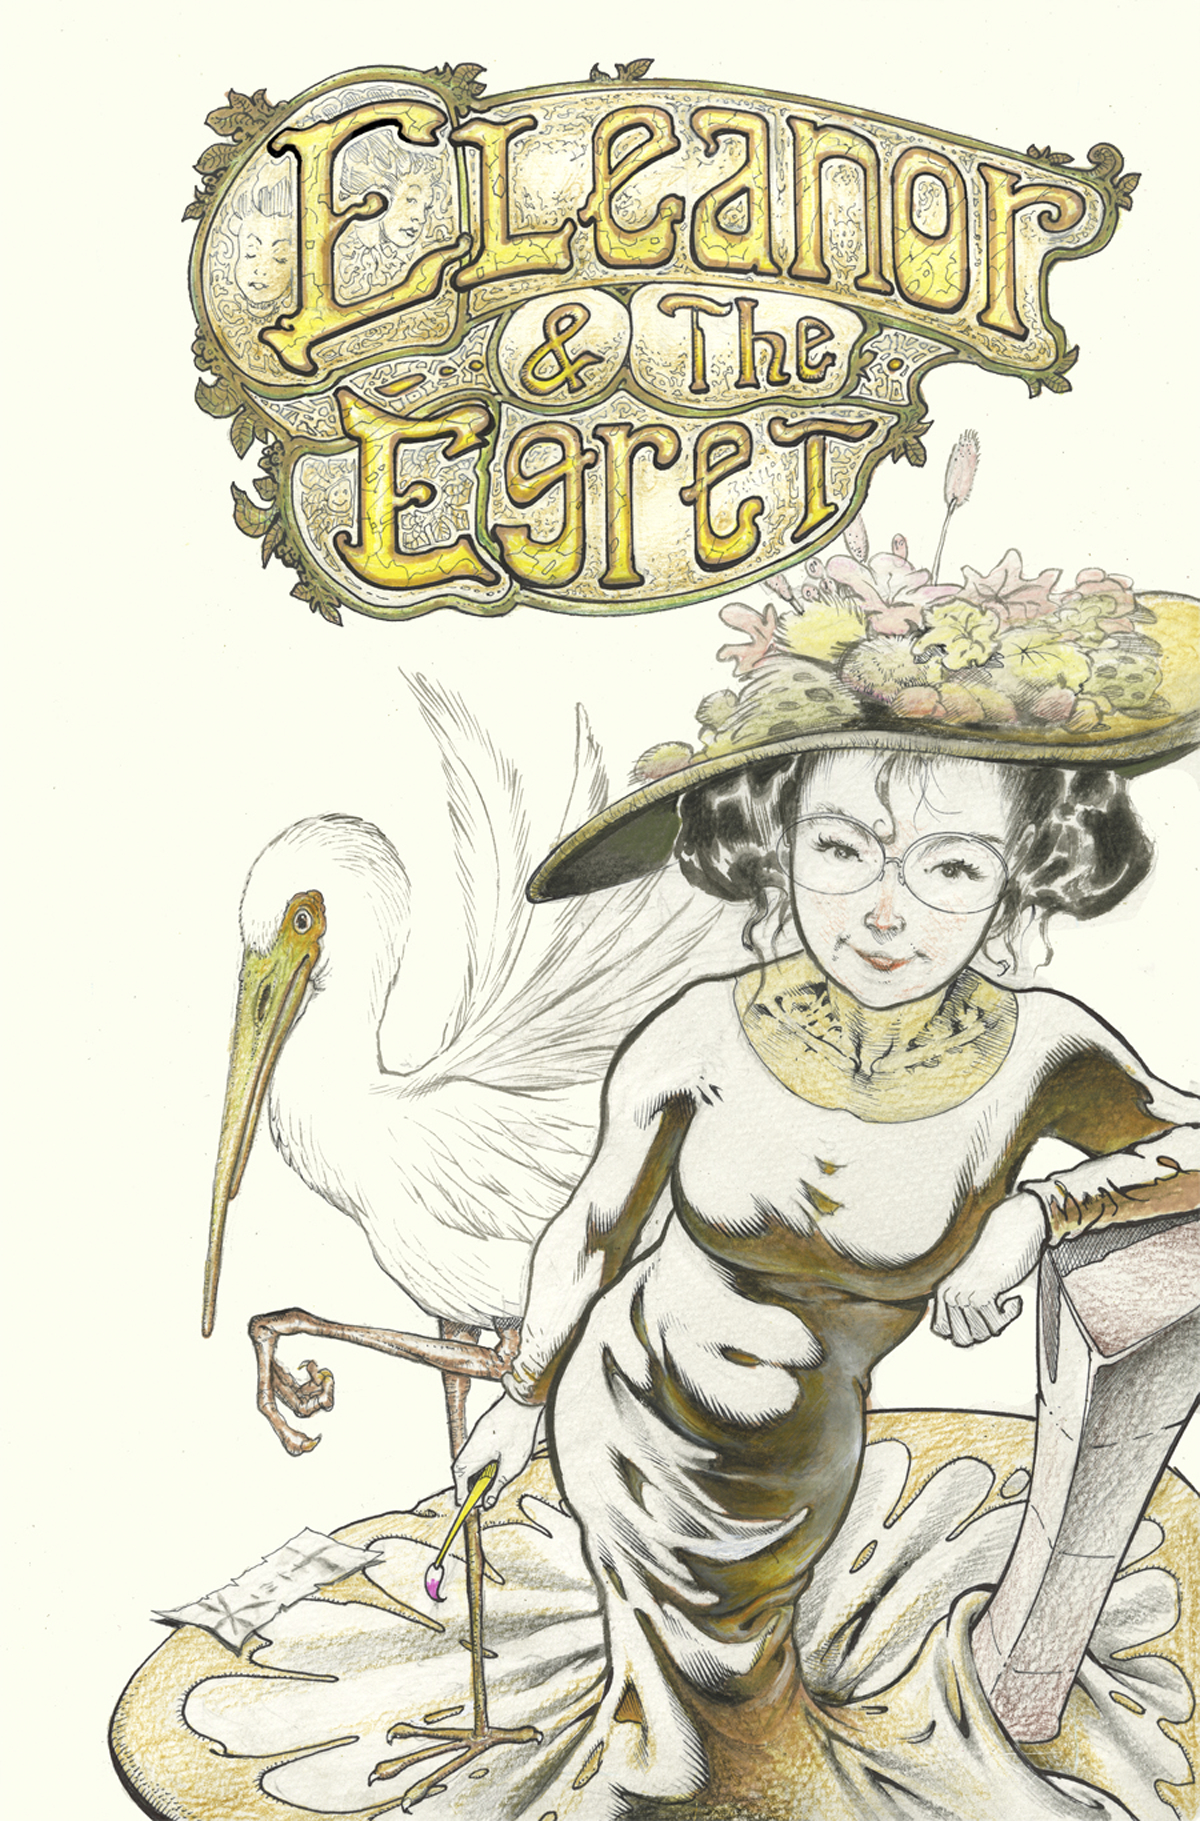 ELEANOR & THE EGRET #1